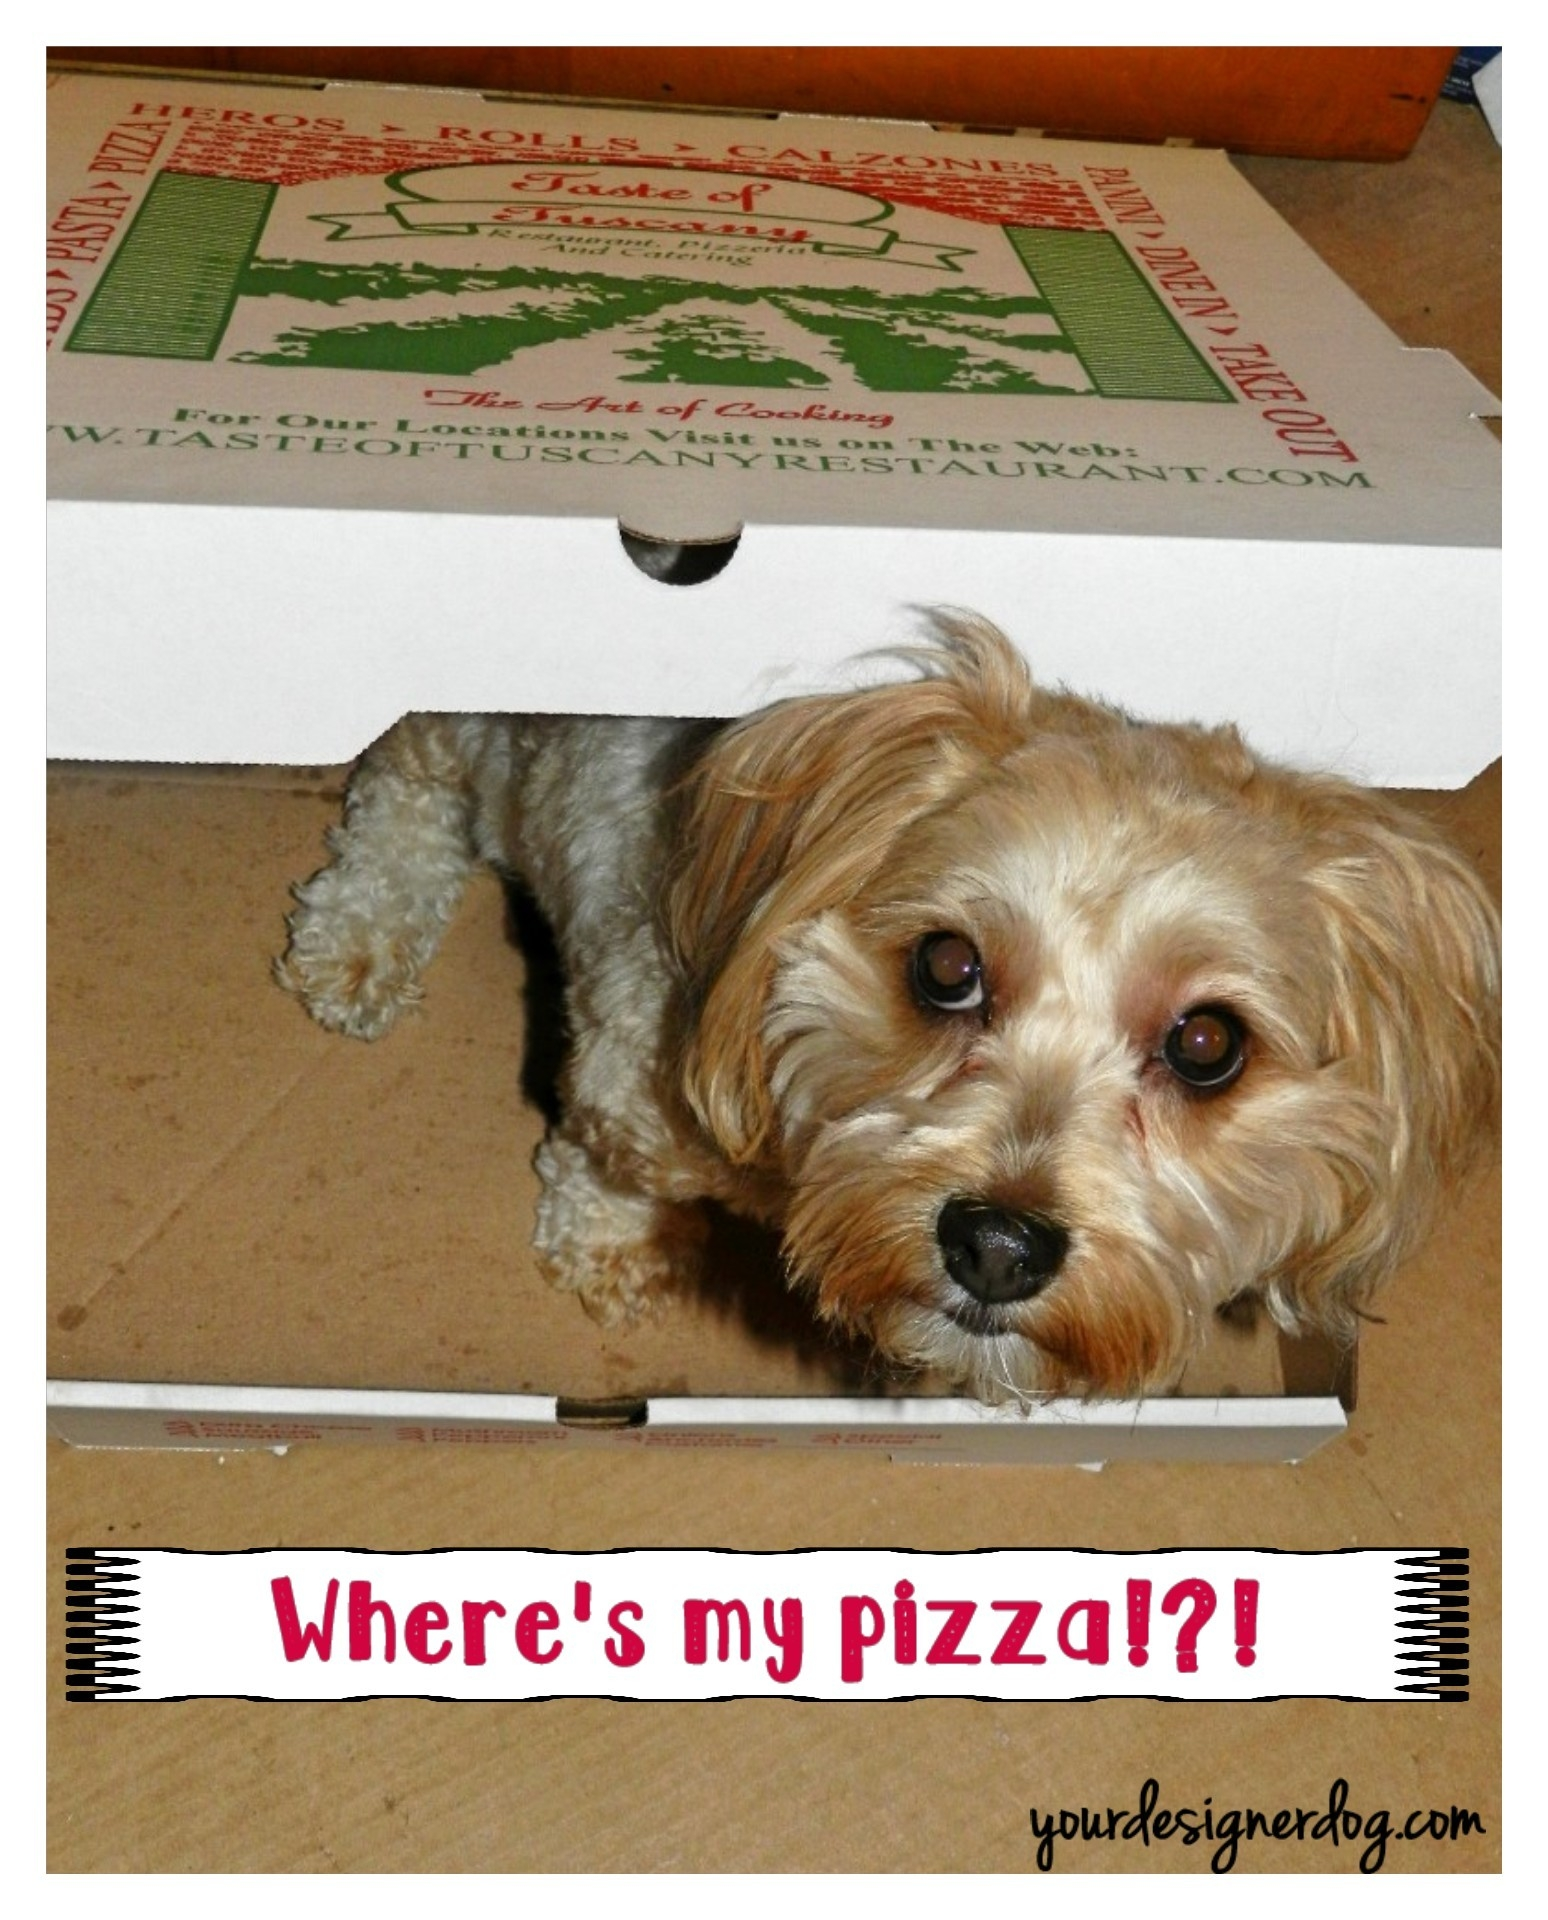 Where's My Pizza?!?